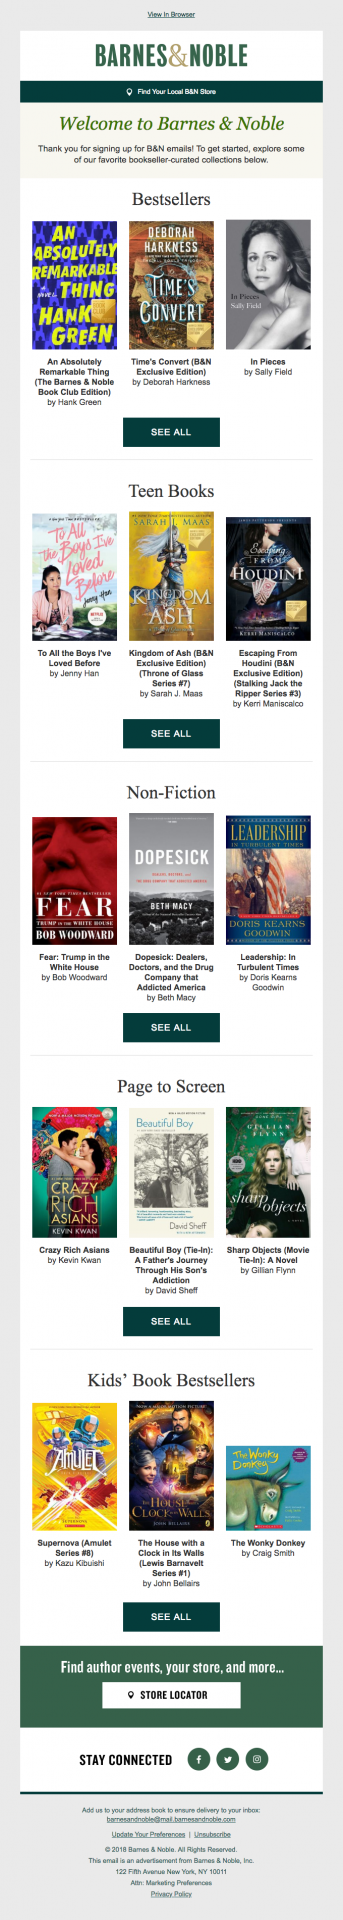 Barnes & Noble book recommendation email